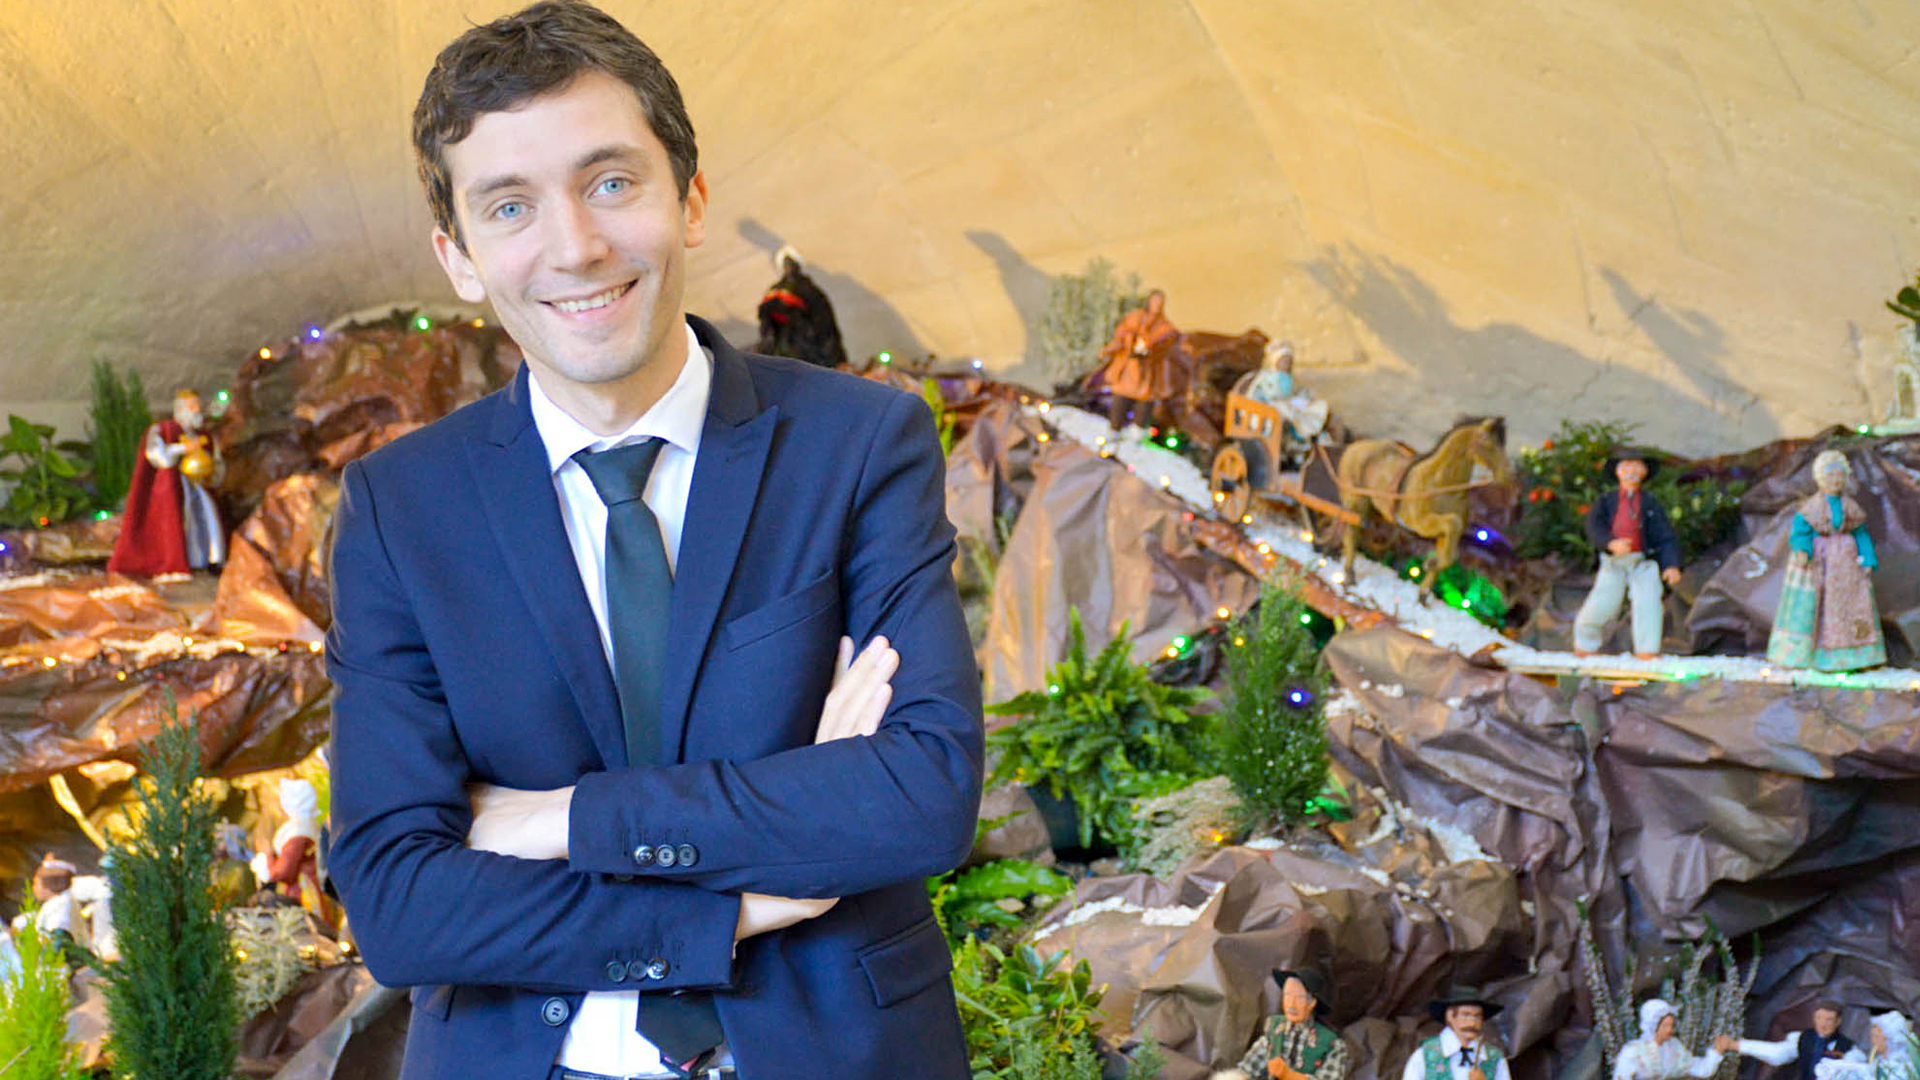 Mayor Fined on Refusal to Take Down Town's Nativity Crib